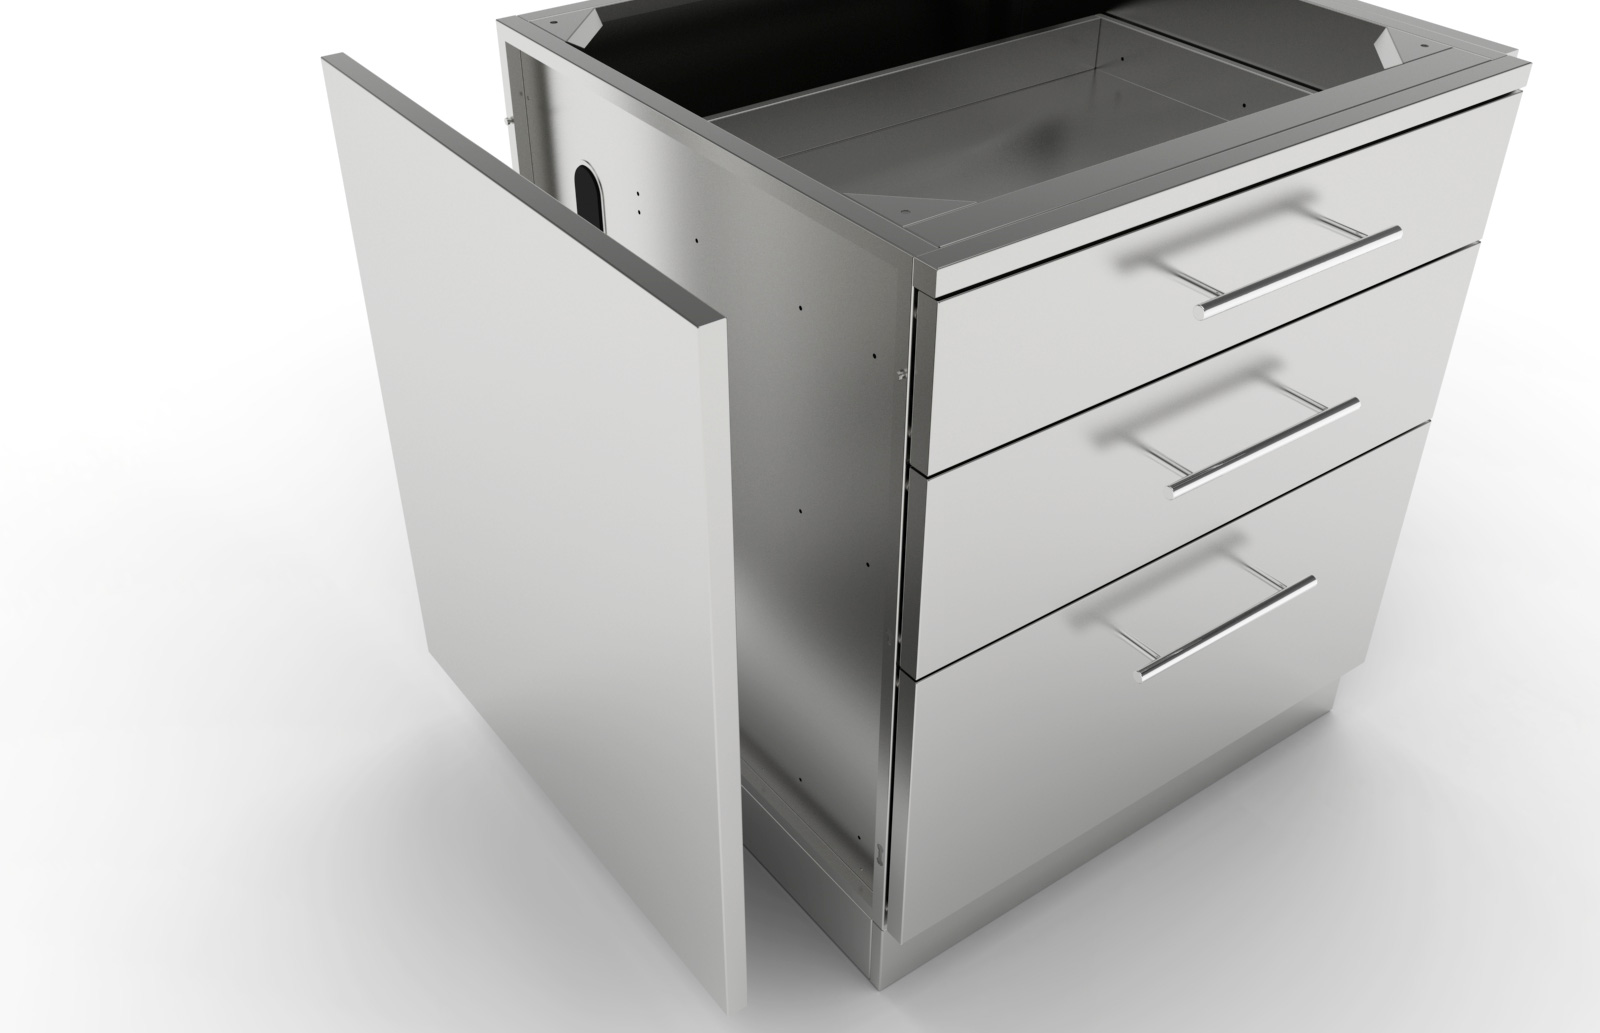 Charmant Stainless Steel Base Cabinets · Stainless Steel Base Cabinets ...